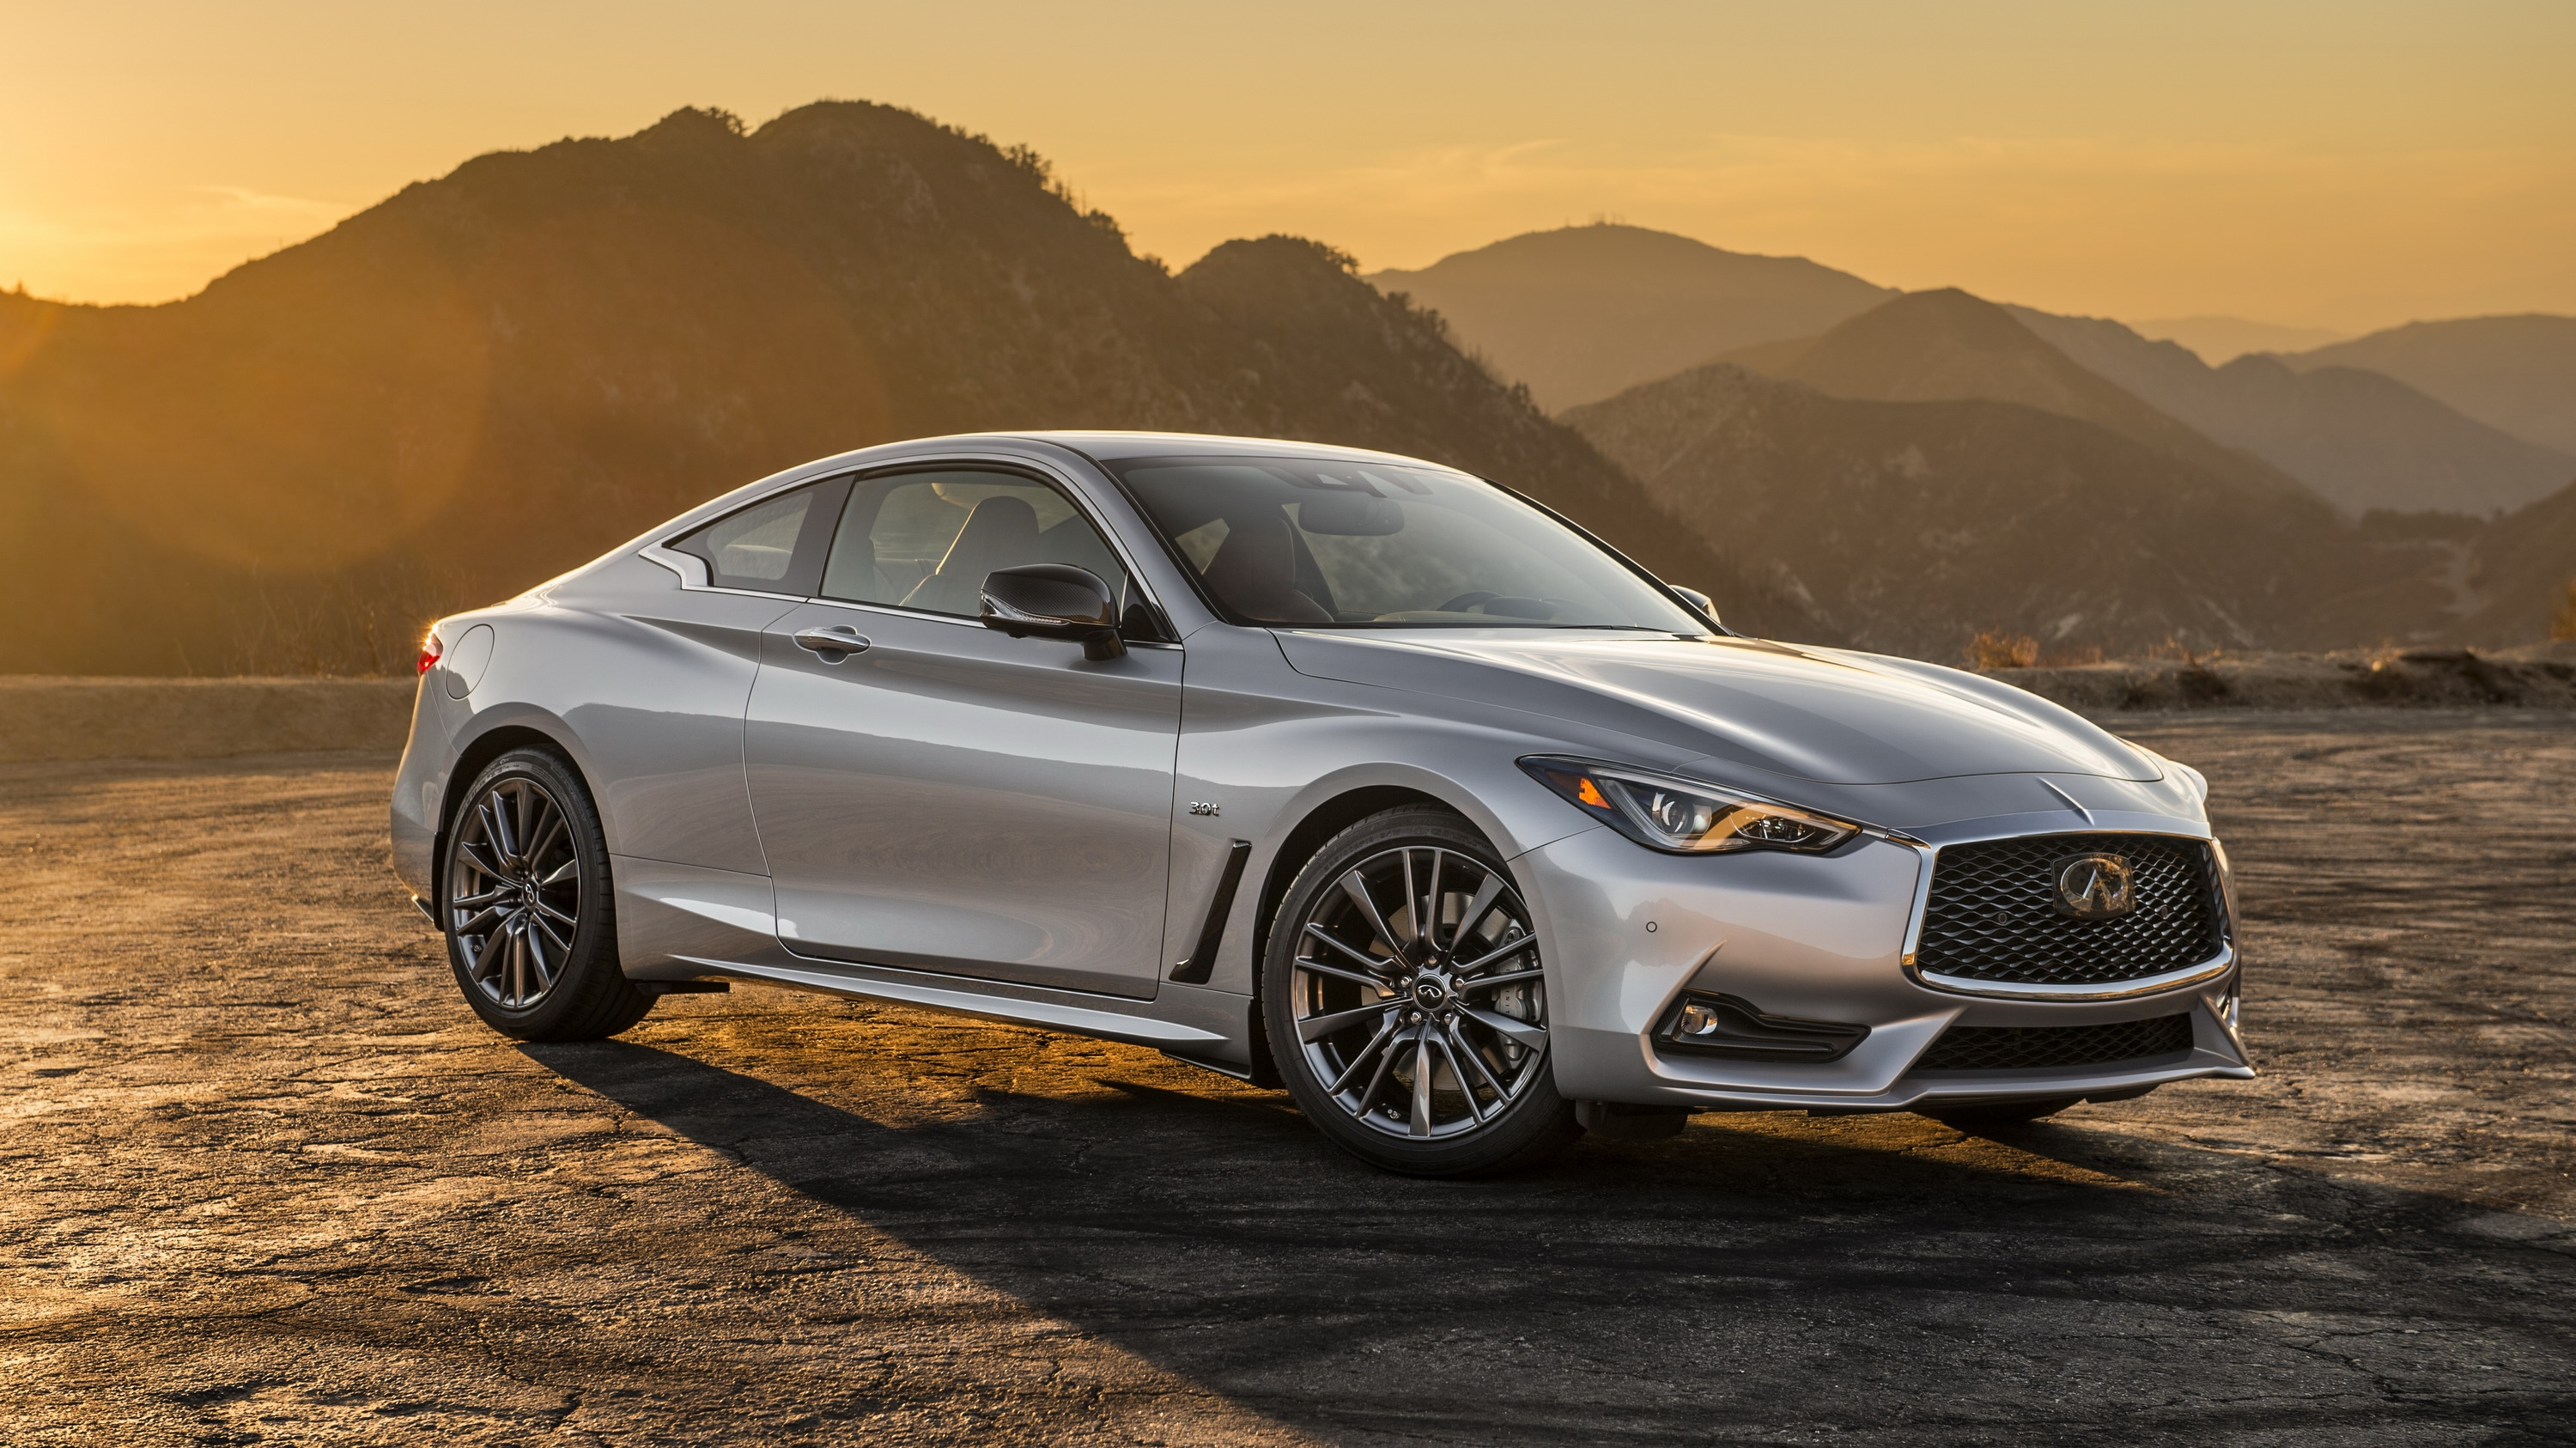 infiniti q60 sport gets priced from 48 300 news top speed. Black Bedroom Furniture Sets. Home Design Ideas